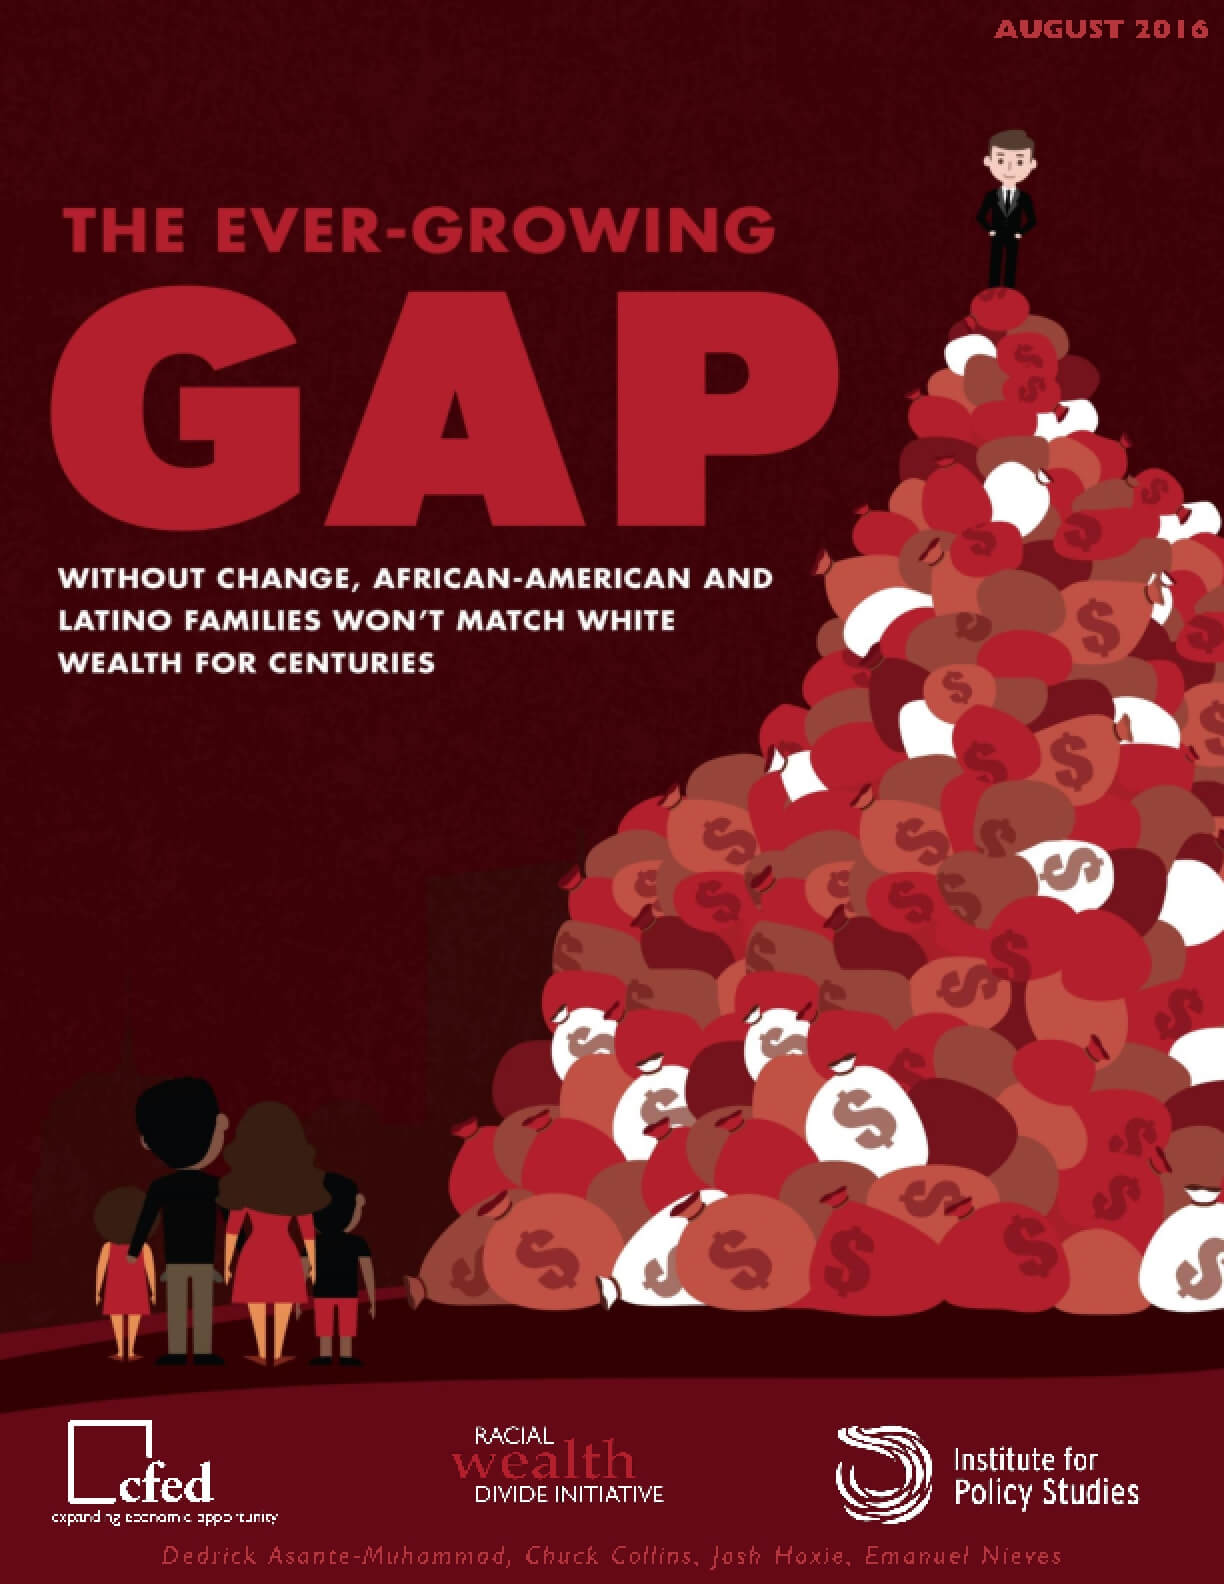 The Ever-Growing GAP: Without Change, African-American and Latino Families Won't Match White Wealth for Centuries